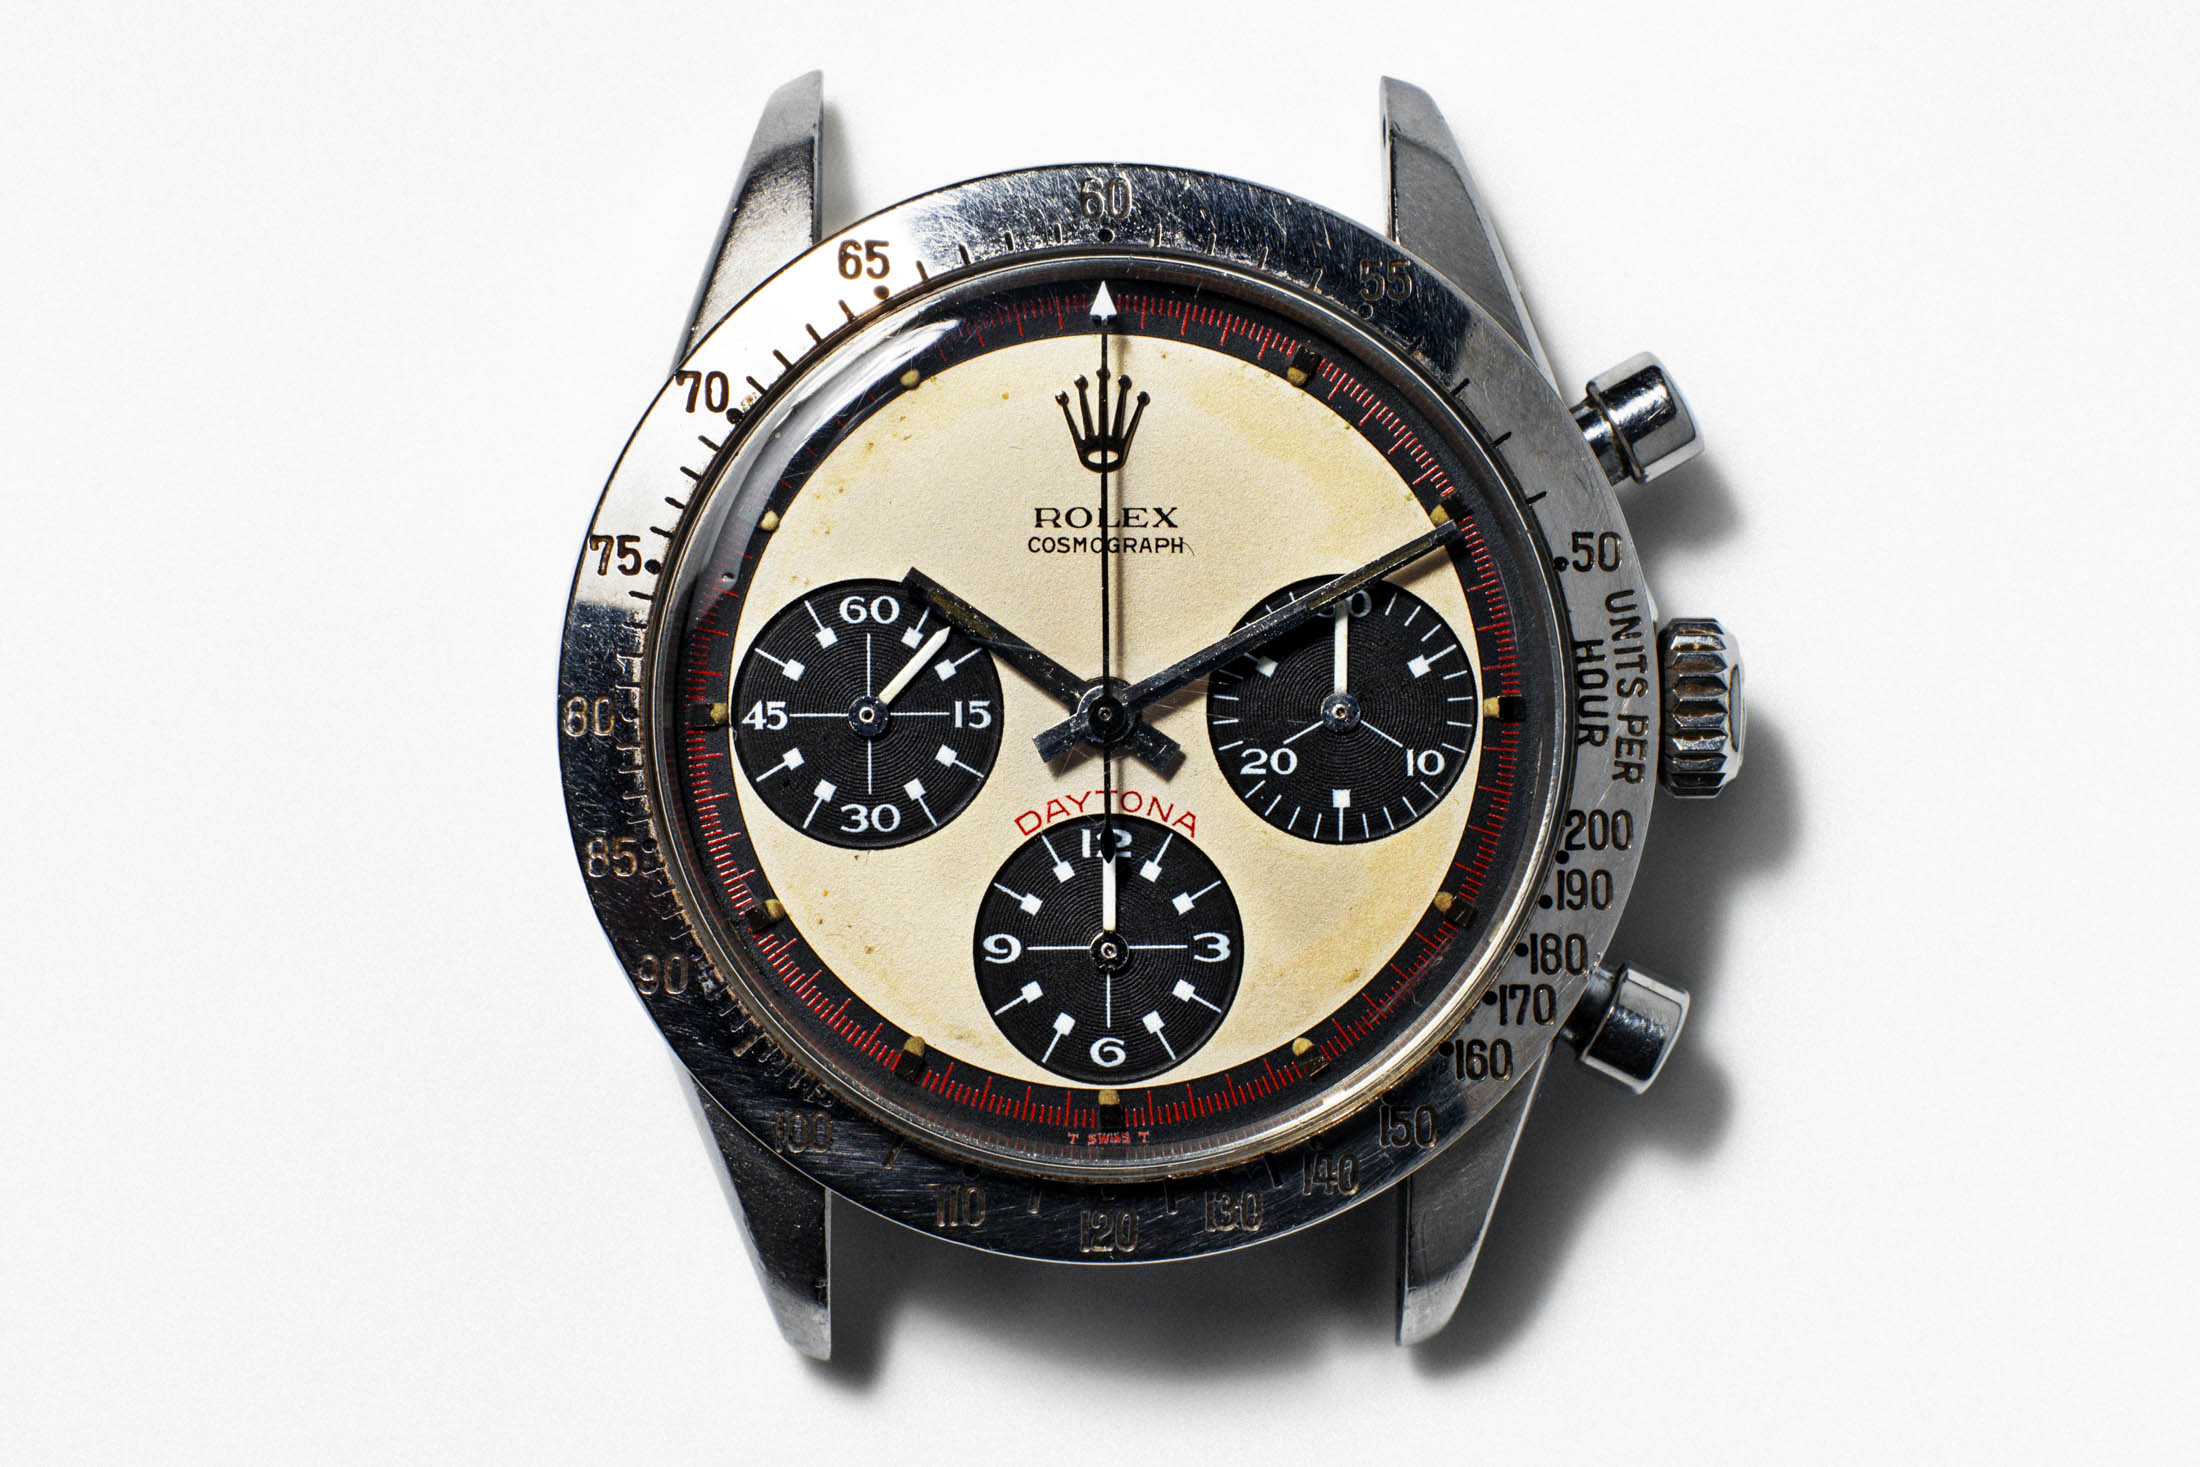 Paul Newman's 6239 Daytona - Photo: Courtesy of Henry Leutwyler/Contour by Getty Images